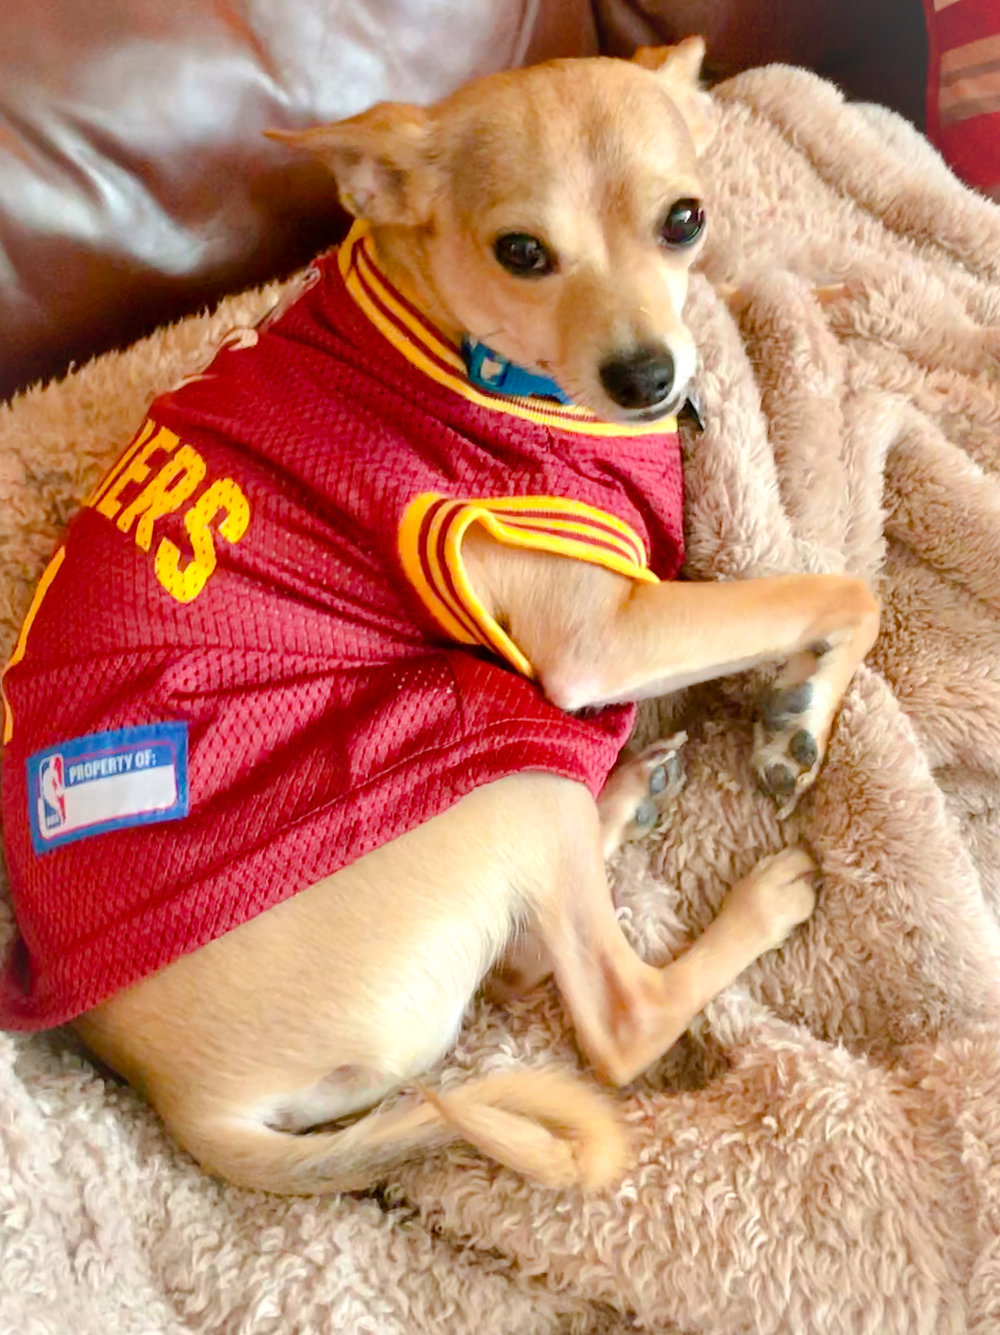 Cooper is relaxing and watching the Cavs game in his jersey!